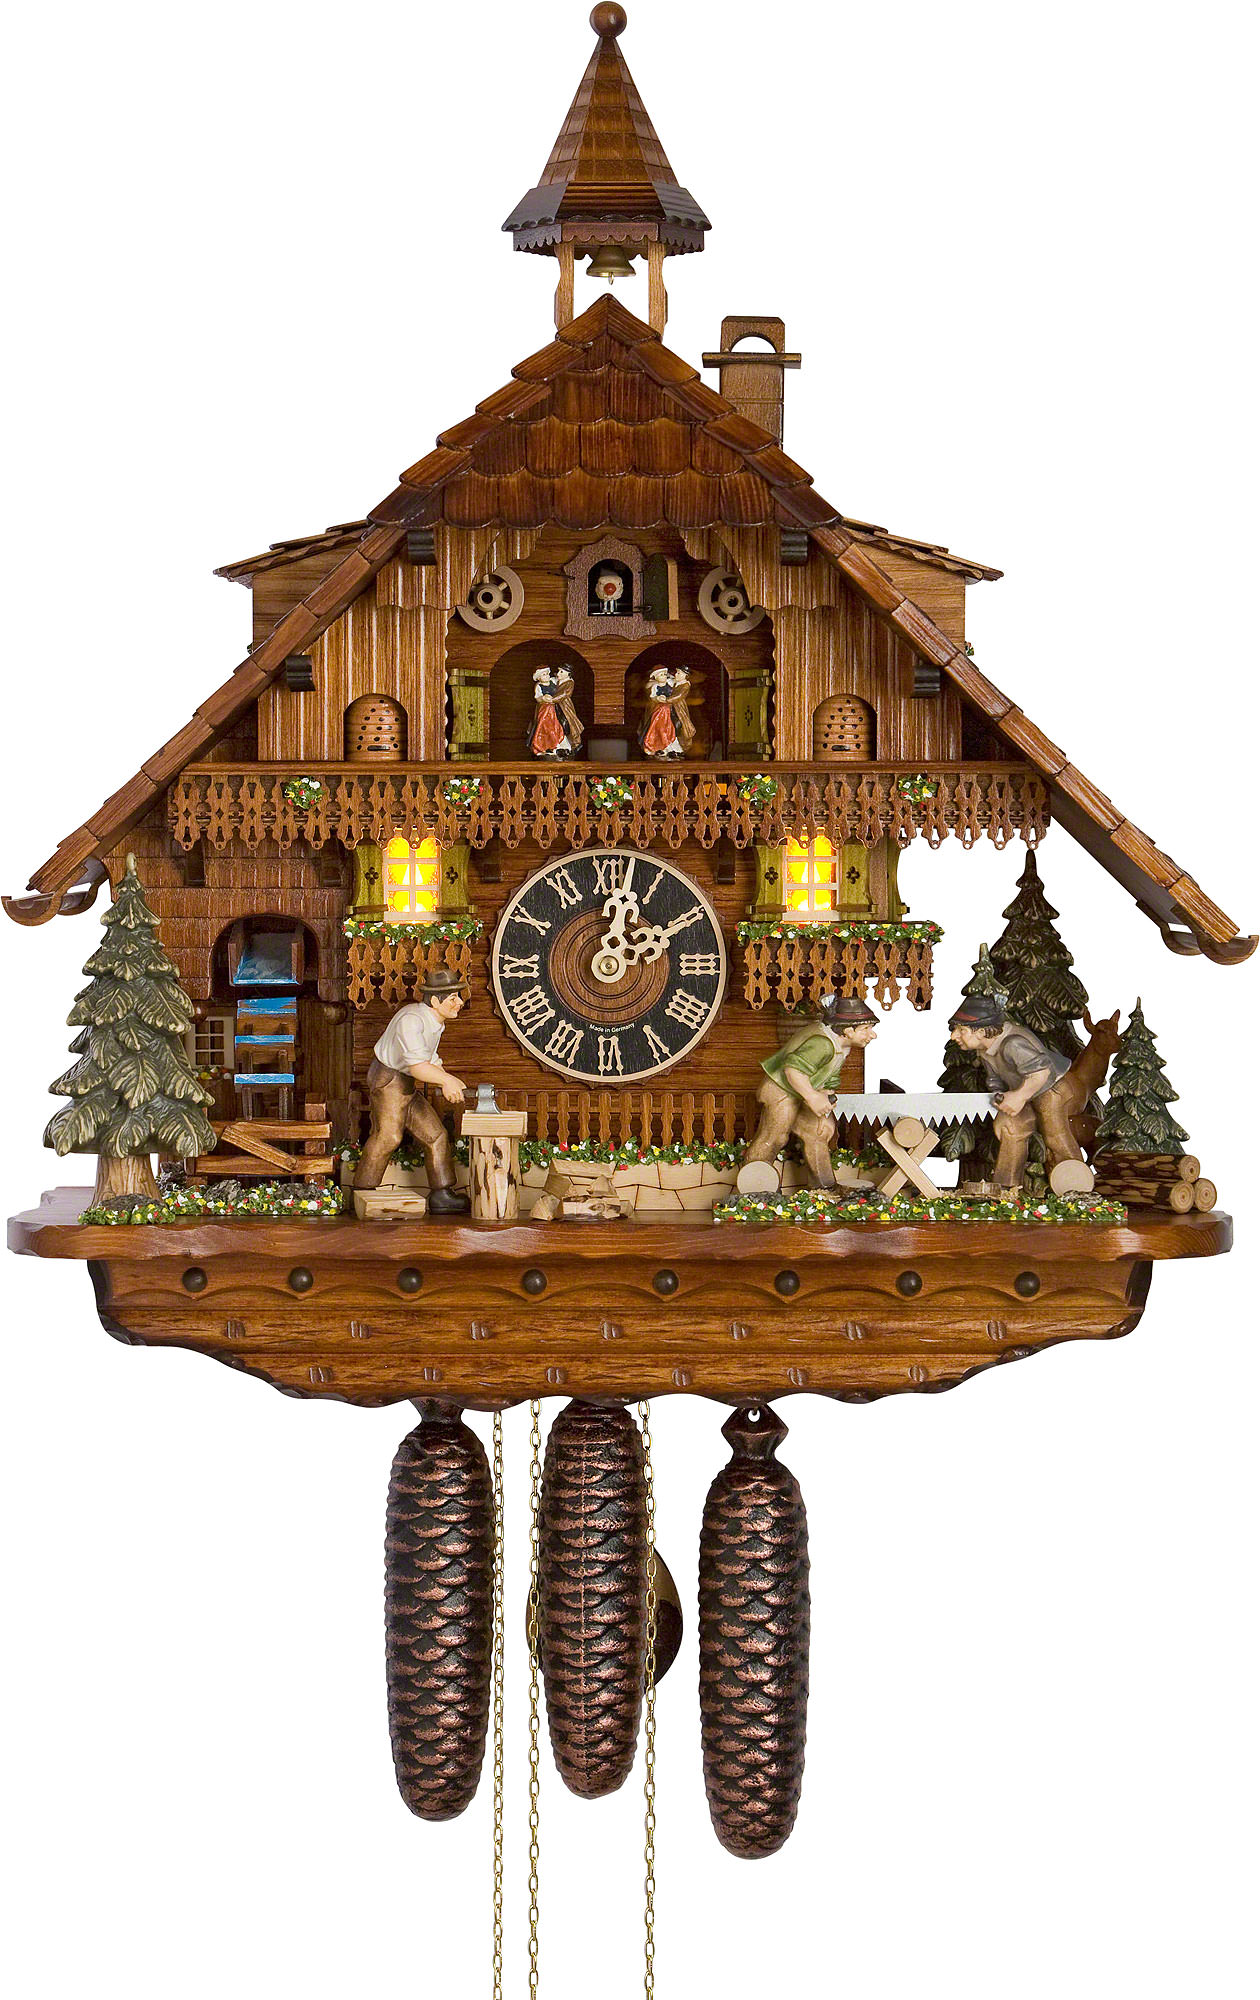 Cuckoo clock 8 day movement chalet style 55cm by h nes How to make a cuckoo clock